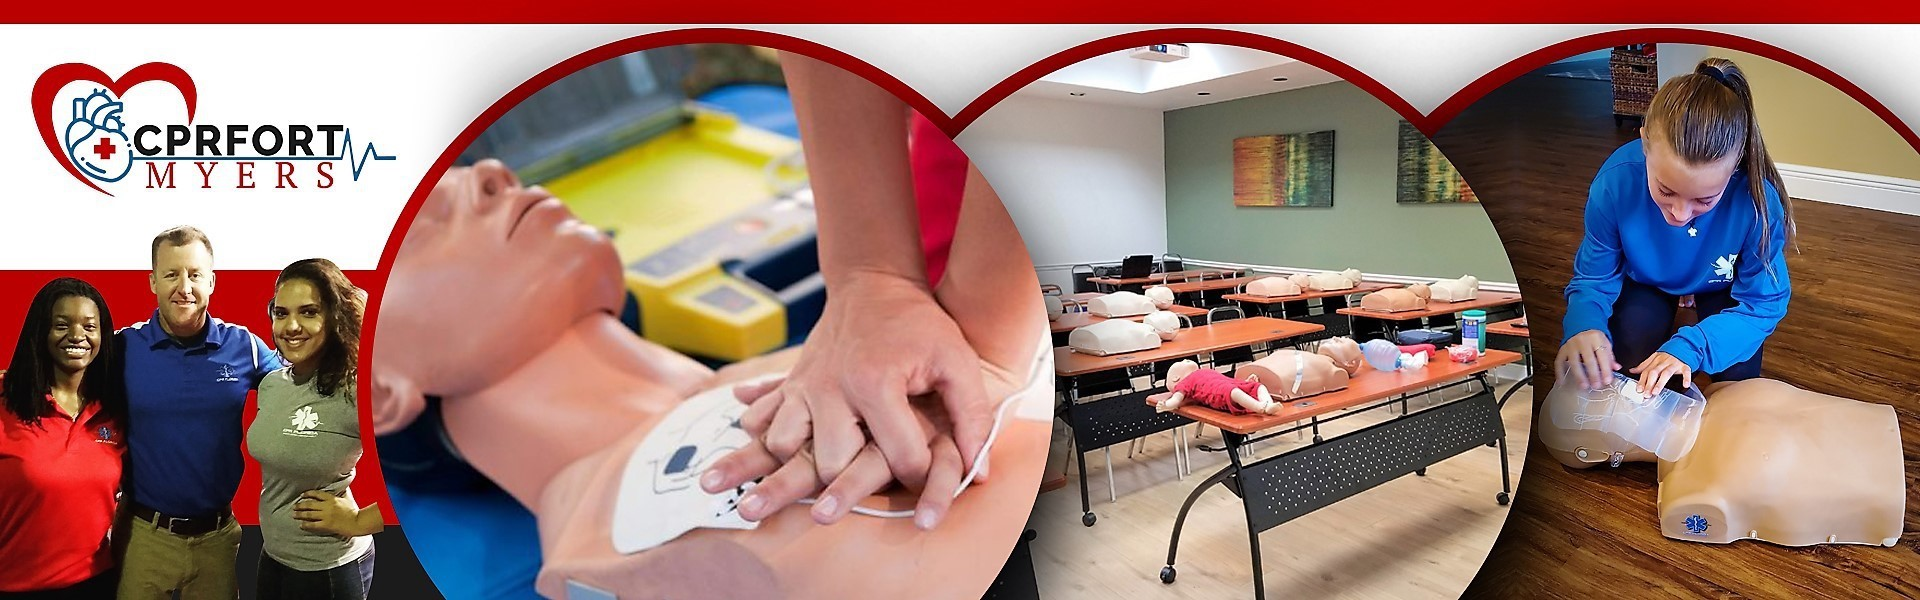 cpr fort myers naples clearwater certification classes